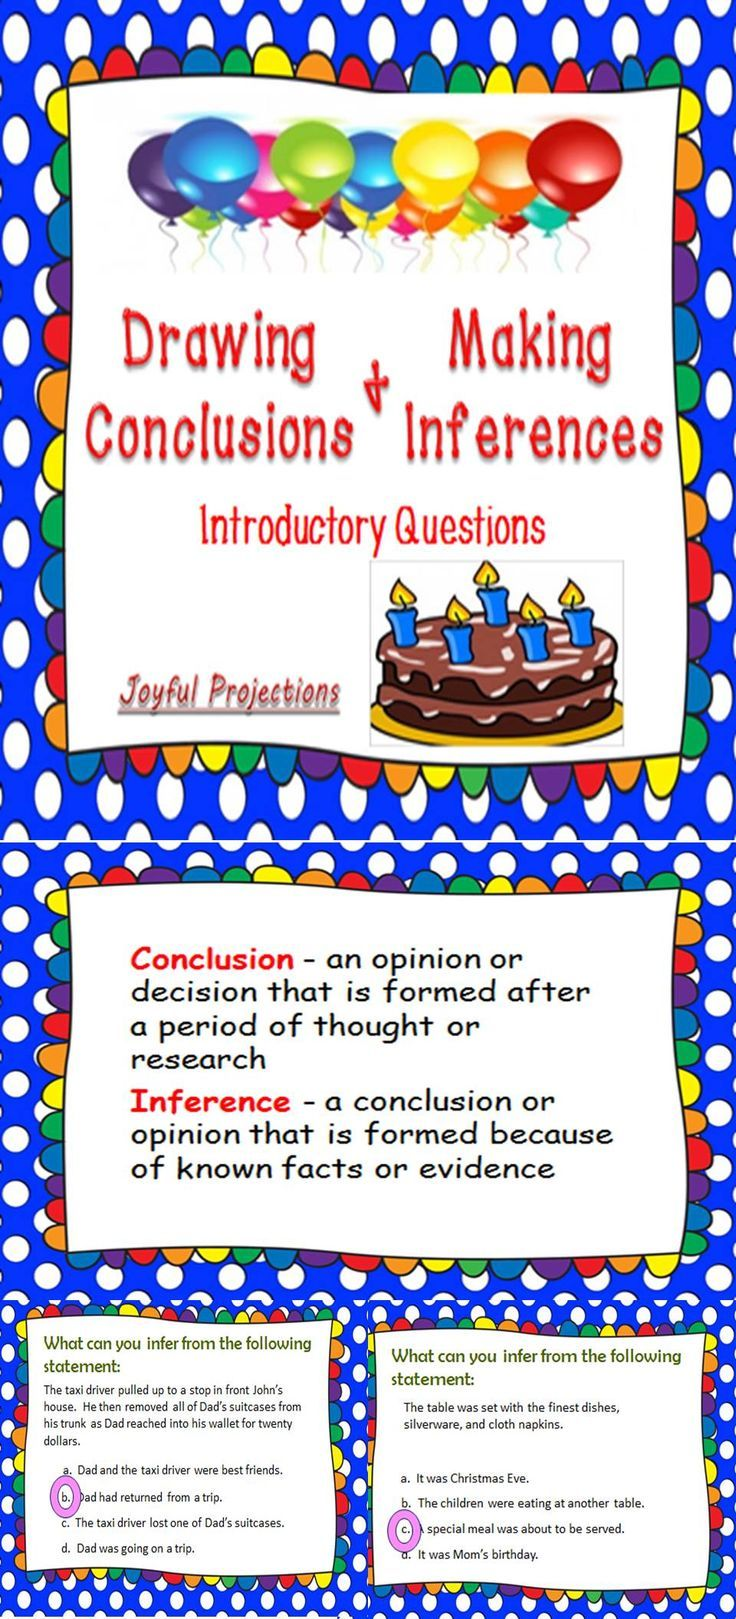 Workbooks making inferences worksheets grade 3 : 355 best Inference Lessons images on Pinterest | Classroom ideas ...